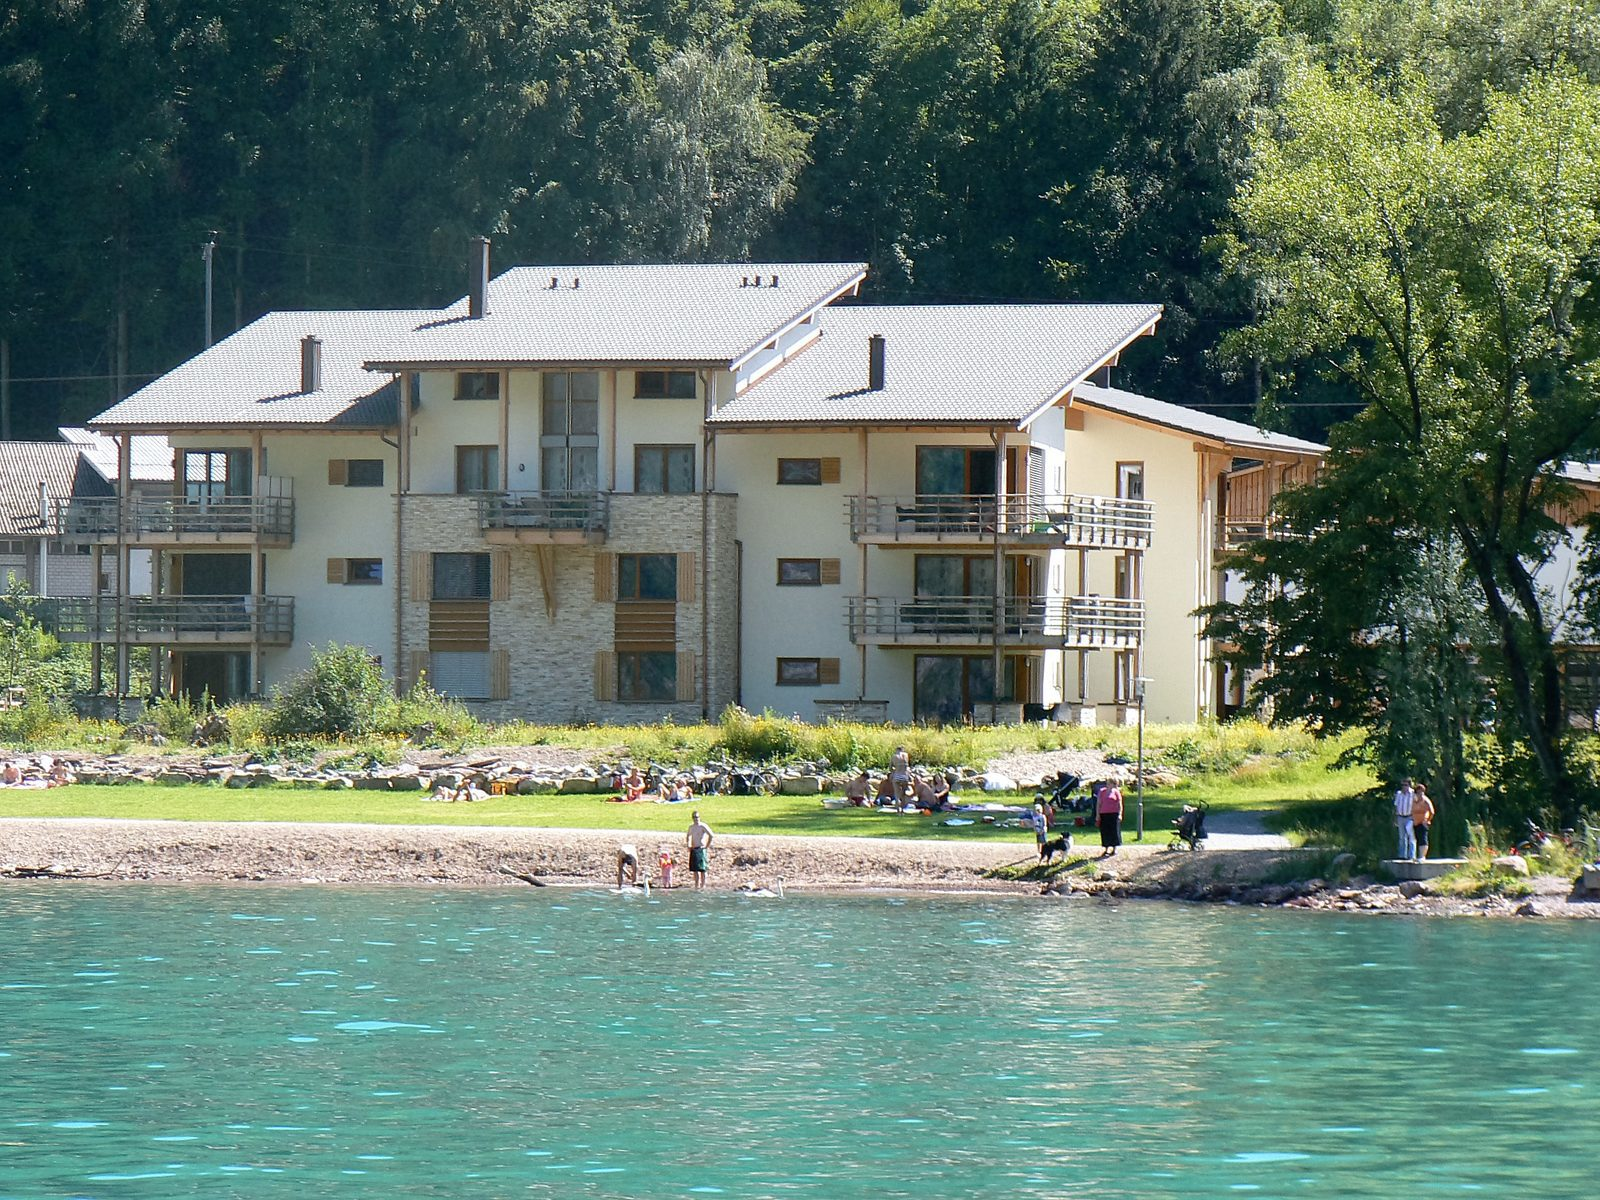 Sun, beach and water sports during the summer vacation, directly from the holiday homes of Walensee Apartments on Resort Walensee Heidiland Flumserberg Switzerland